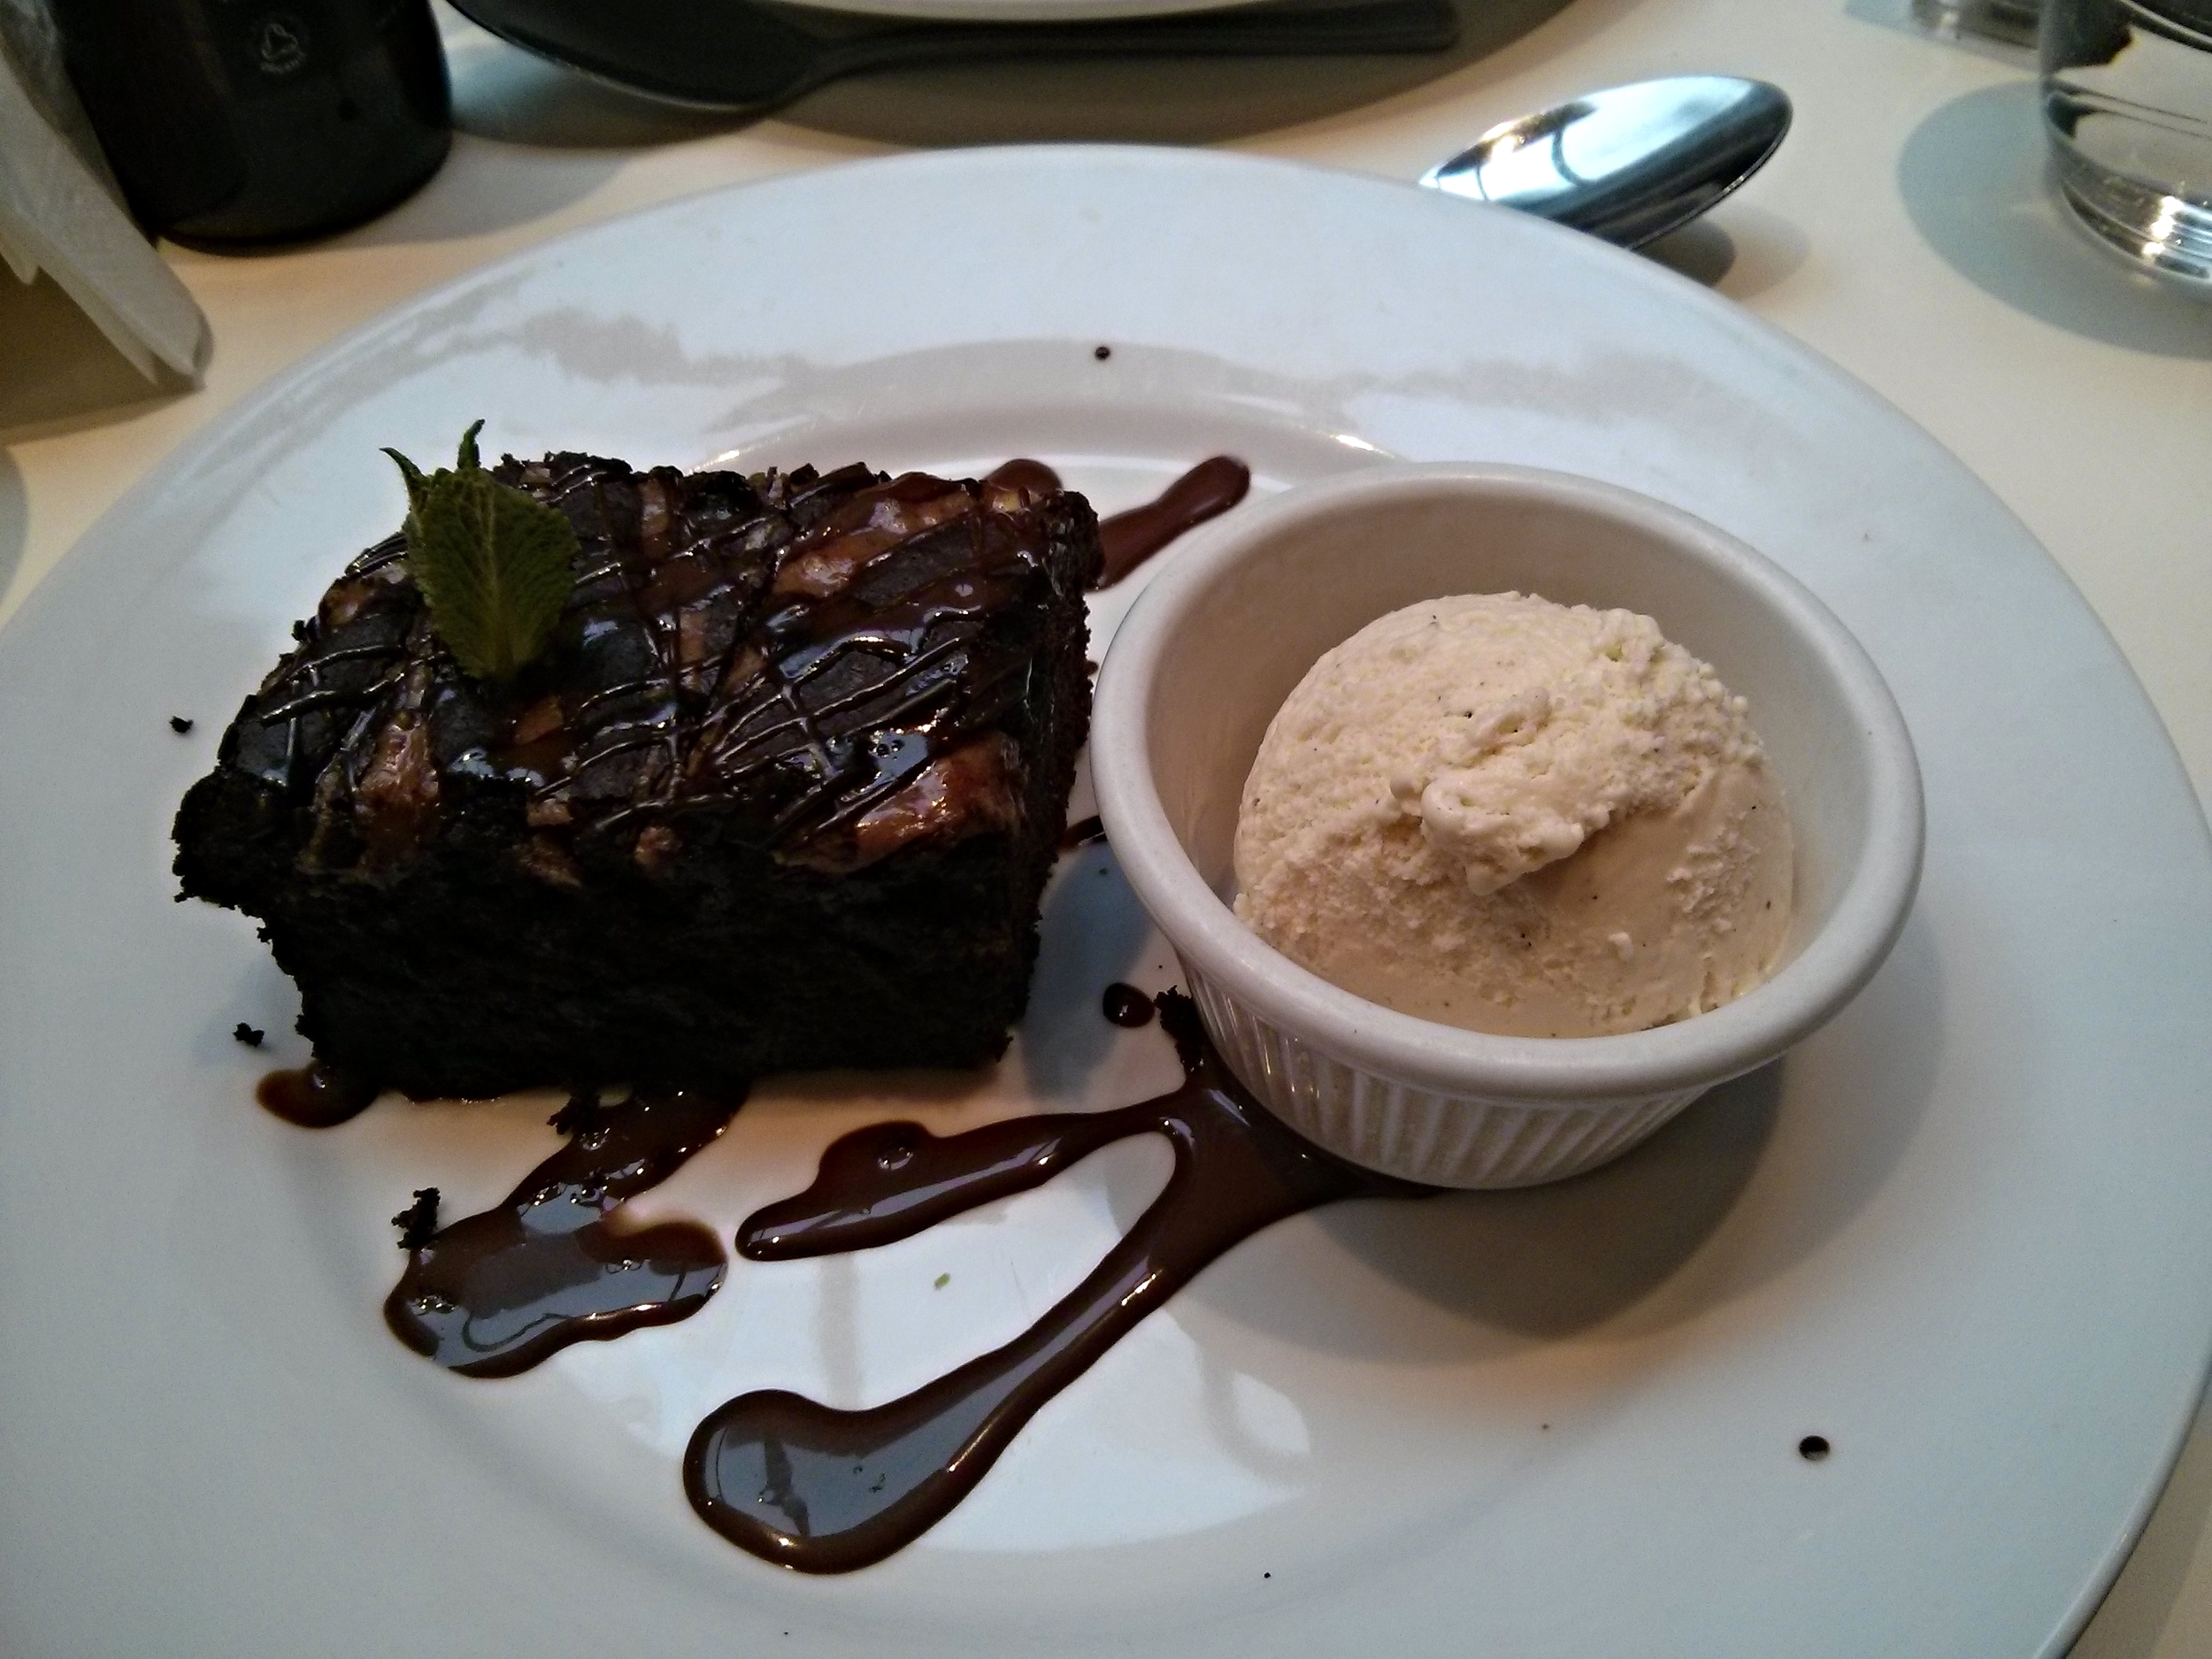 Chocolate and peanut butter brownie with chocolate sauce and vanilla ice cream